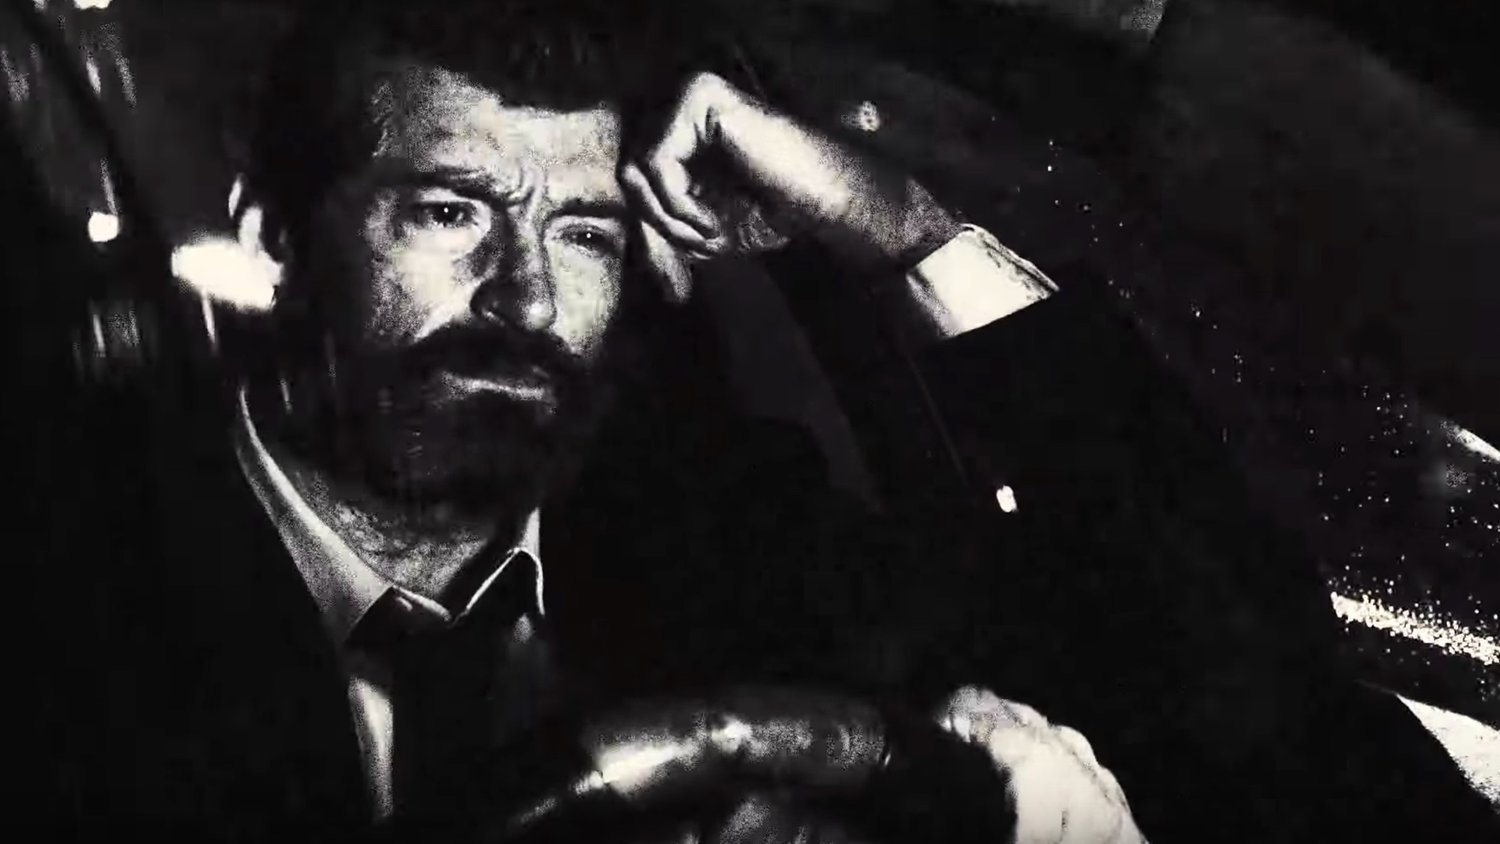 New LOGAN Viral Video Shows Wolverine's Depressing Life as a Chauffeur